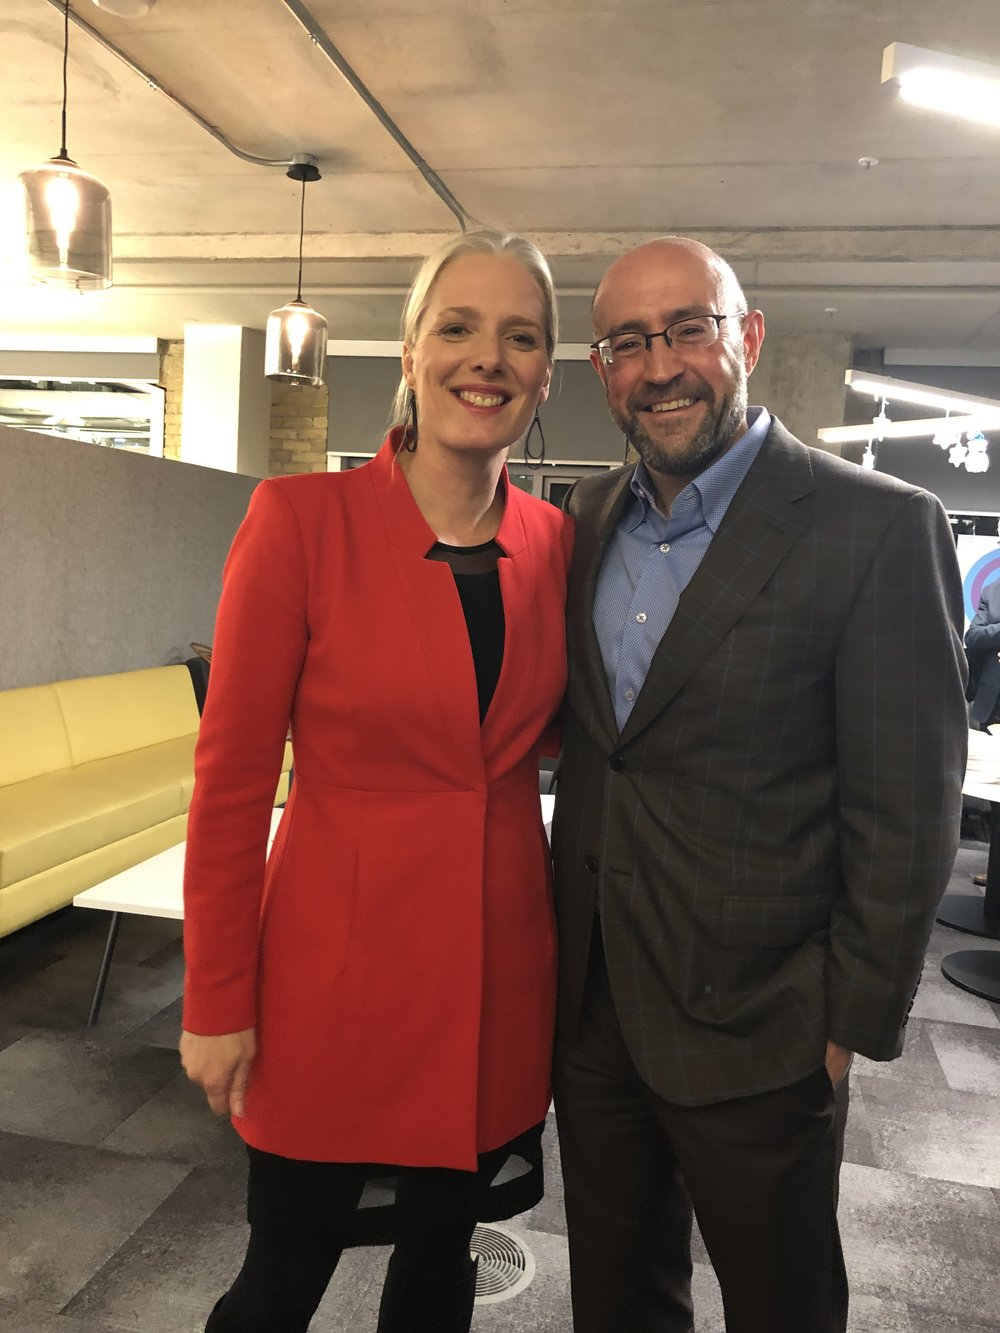 Jay Rosenzweig & The Honourable Catherine McKenna, Canadian Minister of Environment and Climate Change